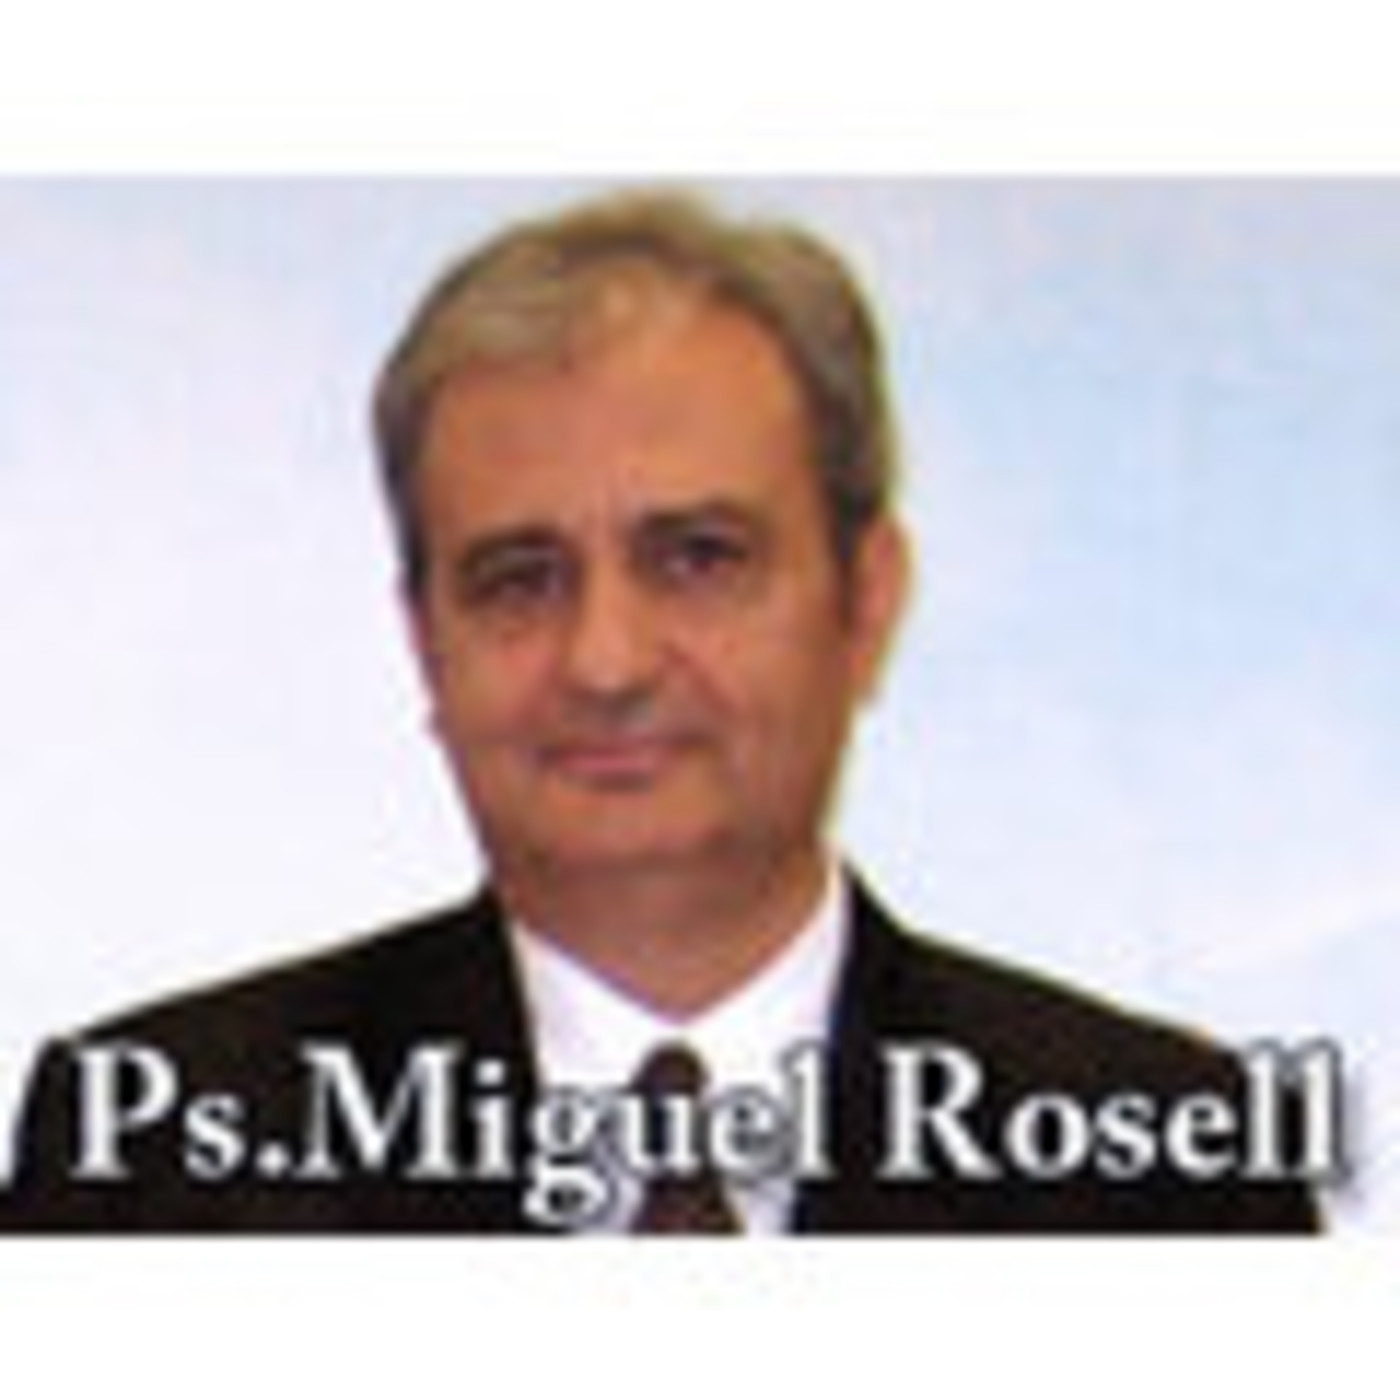 Miguel Rosell